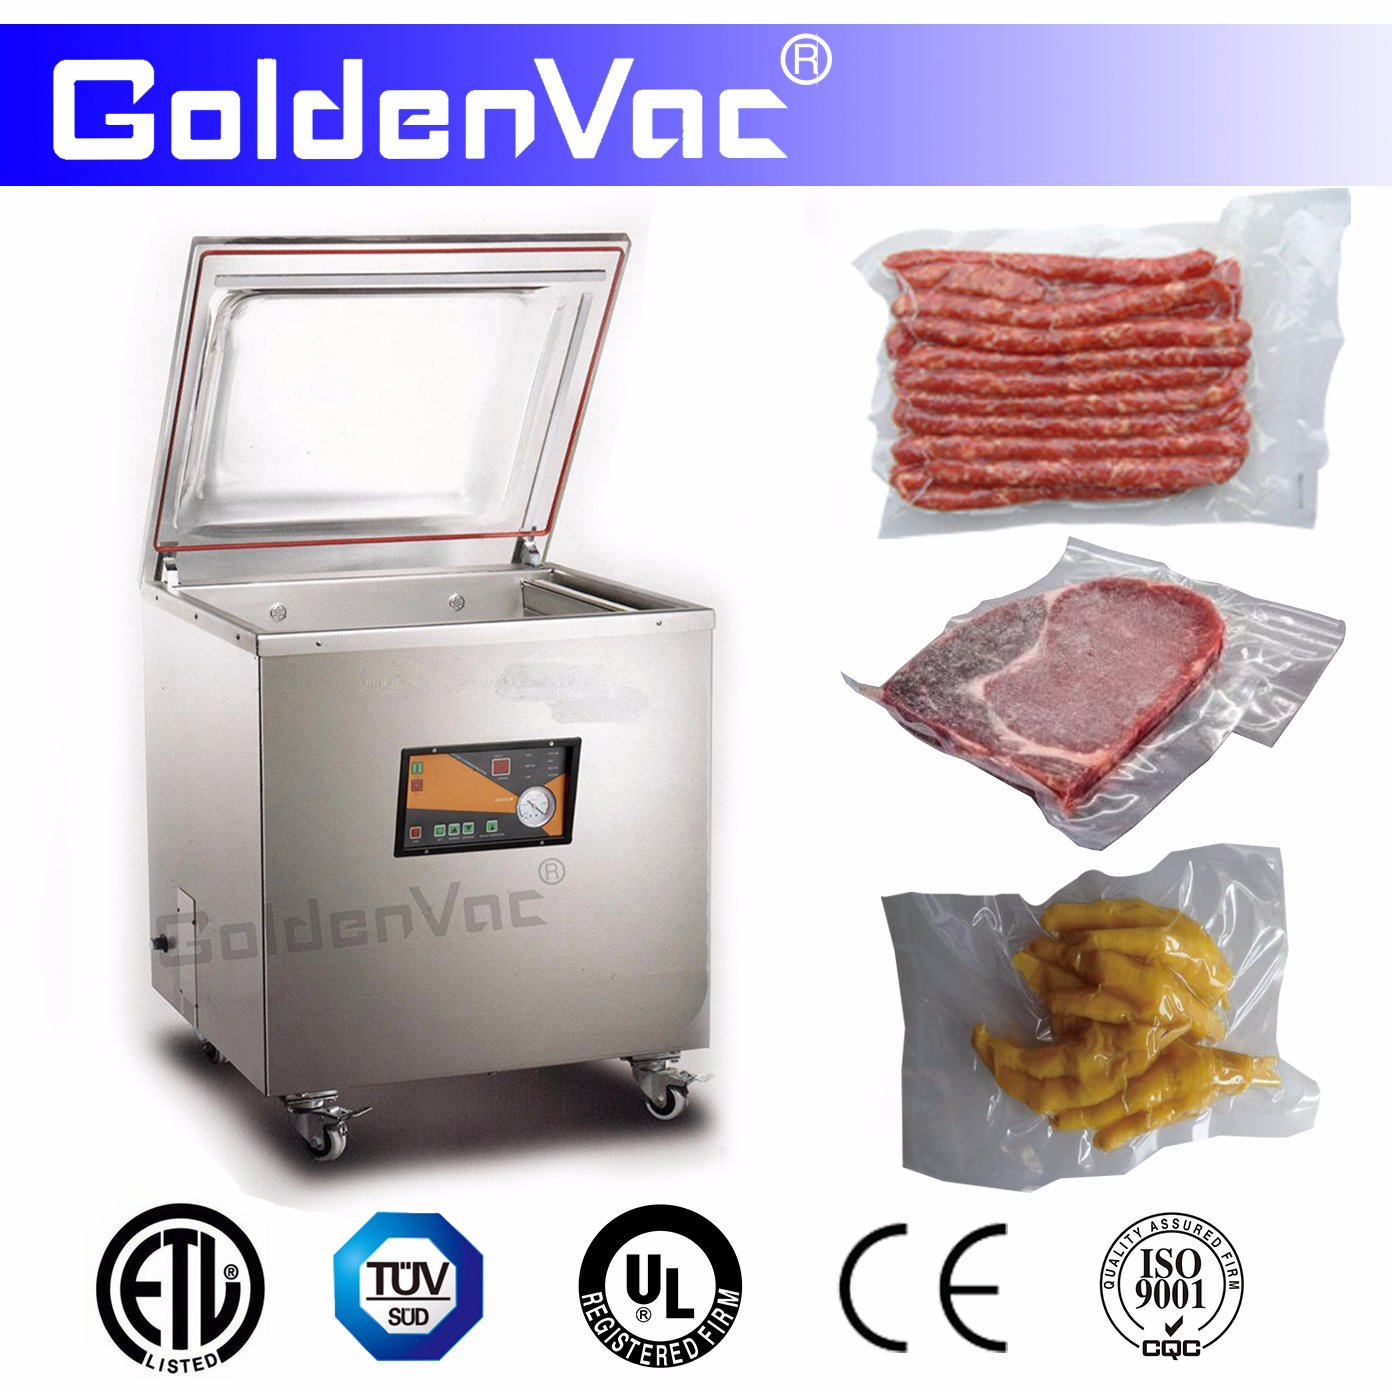 Handy Vacuum Sealer(GK105)